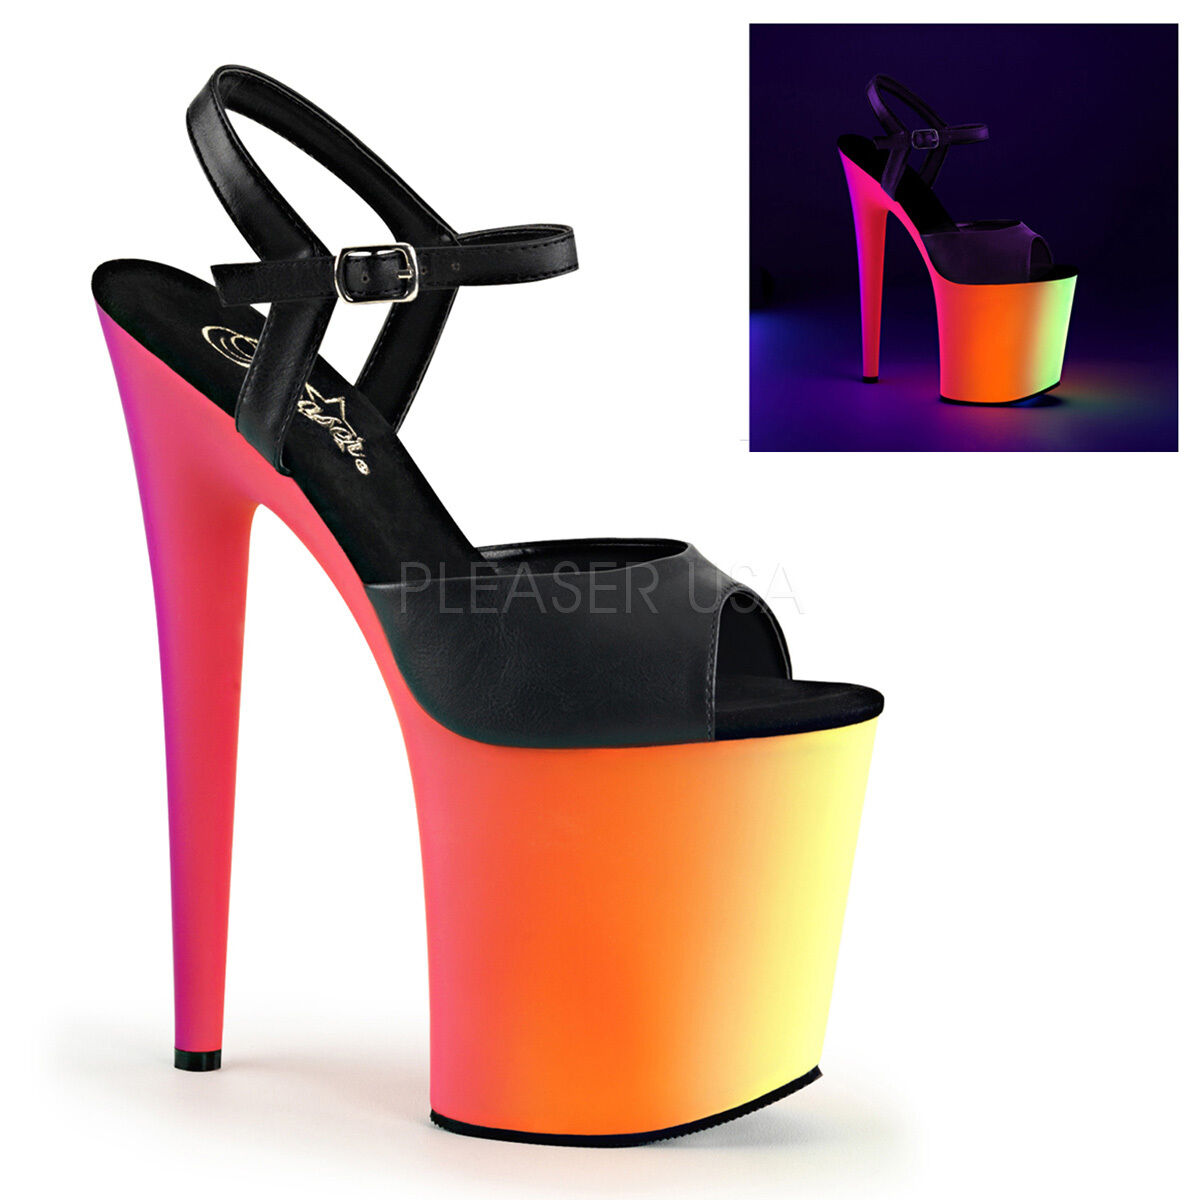 PLEASER Sexy Blacklight Neon Rainbow Rainbow Rainbow Platform 8  High Heel Stripper Dancer shoes 230cad